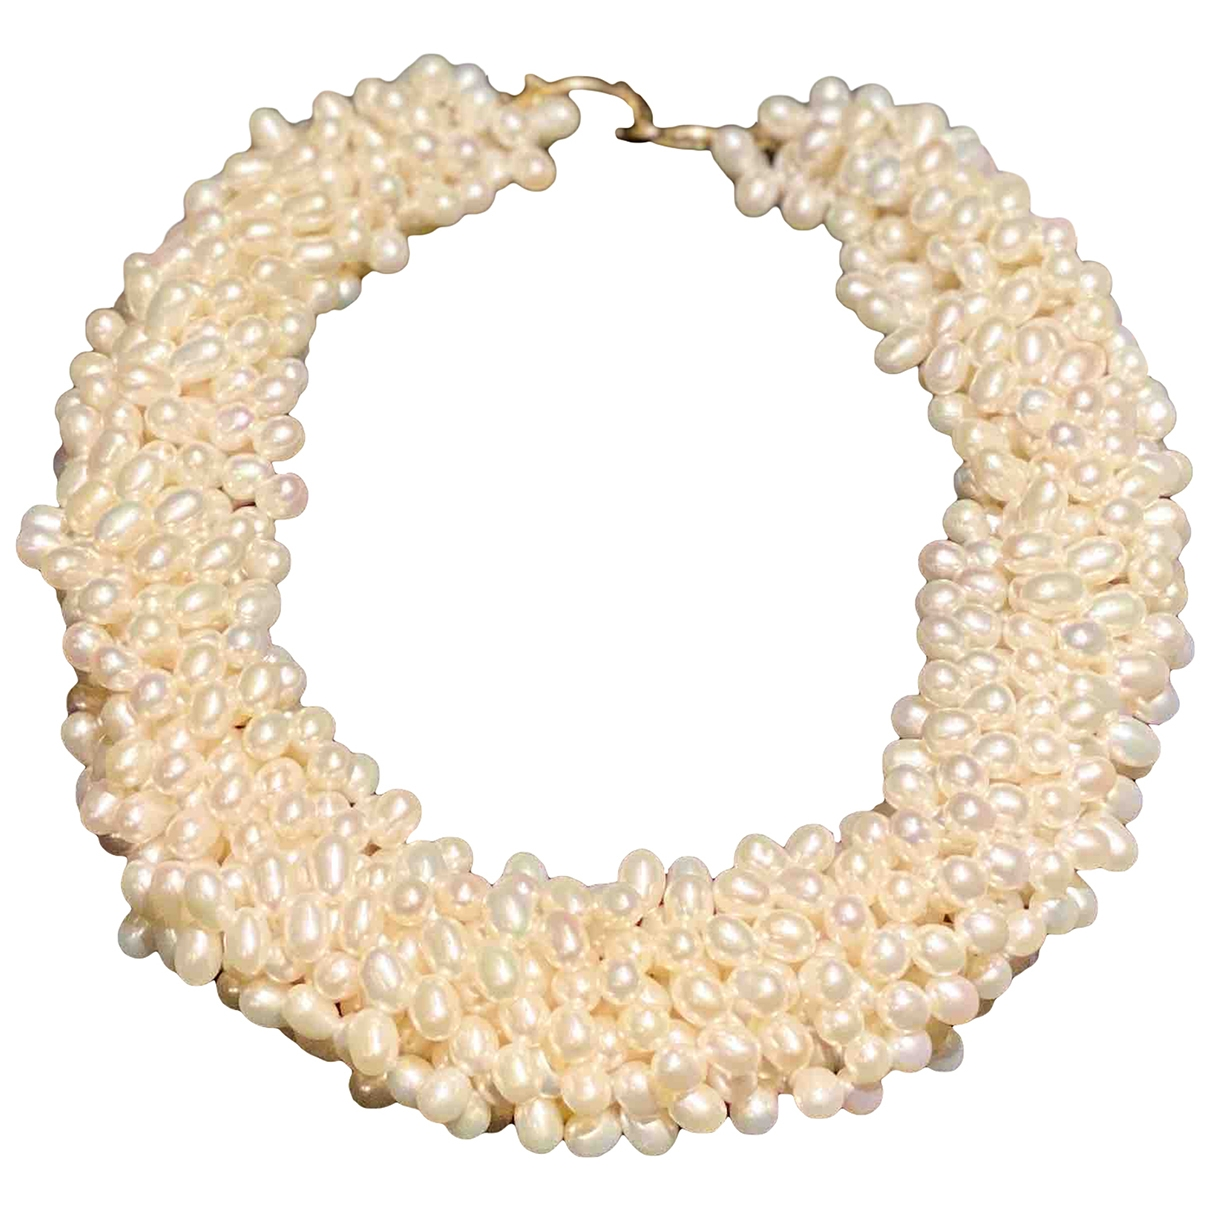 Tiffany & Co Paloma Picasso Kette in  Weiss Perlen